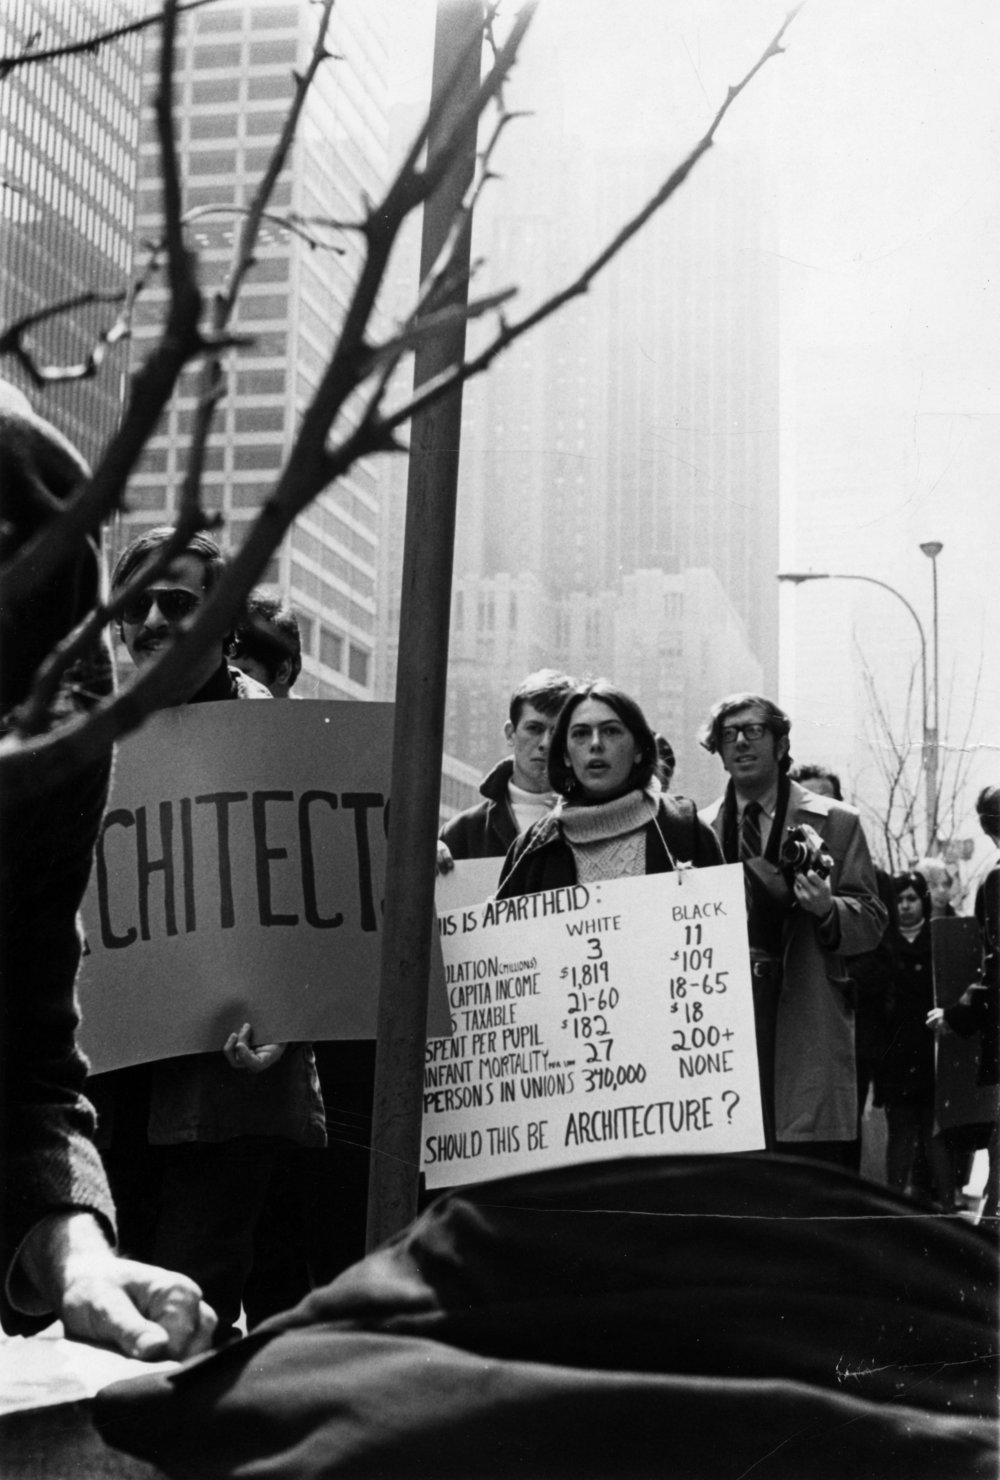 The Architects' Resistance, 1969